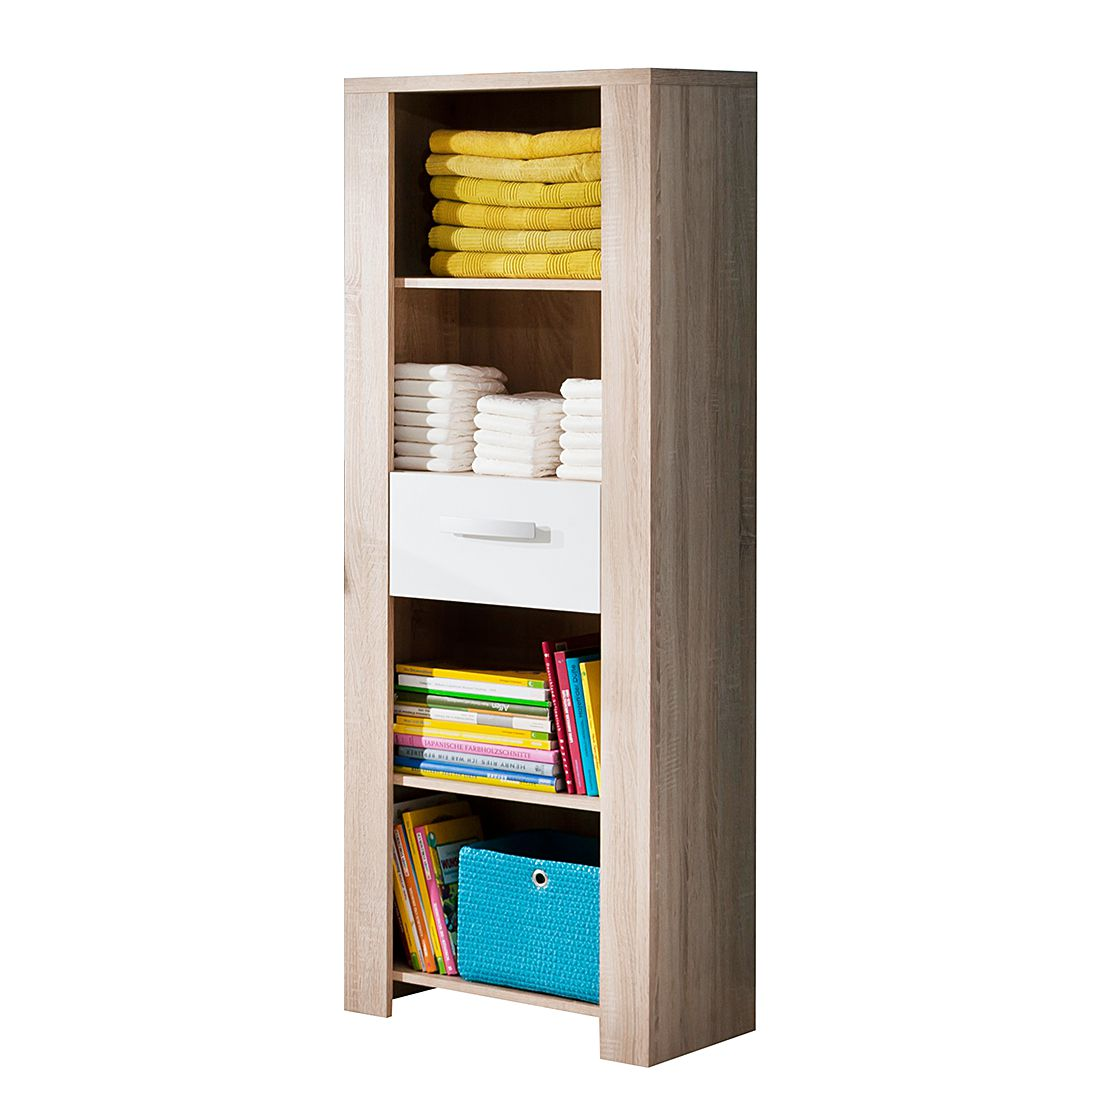 Home 24 - Etagère henri - imitation chêne brut de sciage / blanc, kids club collection